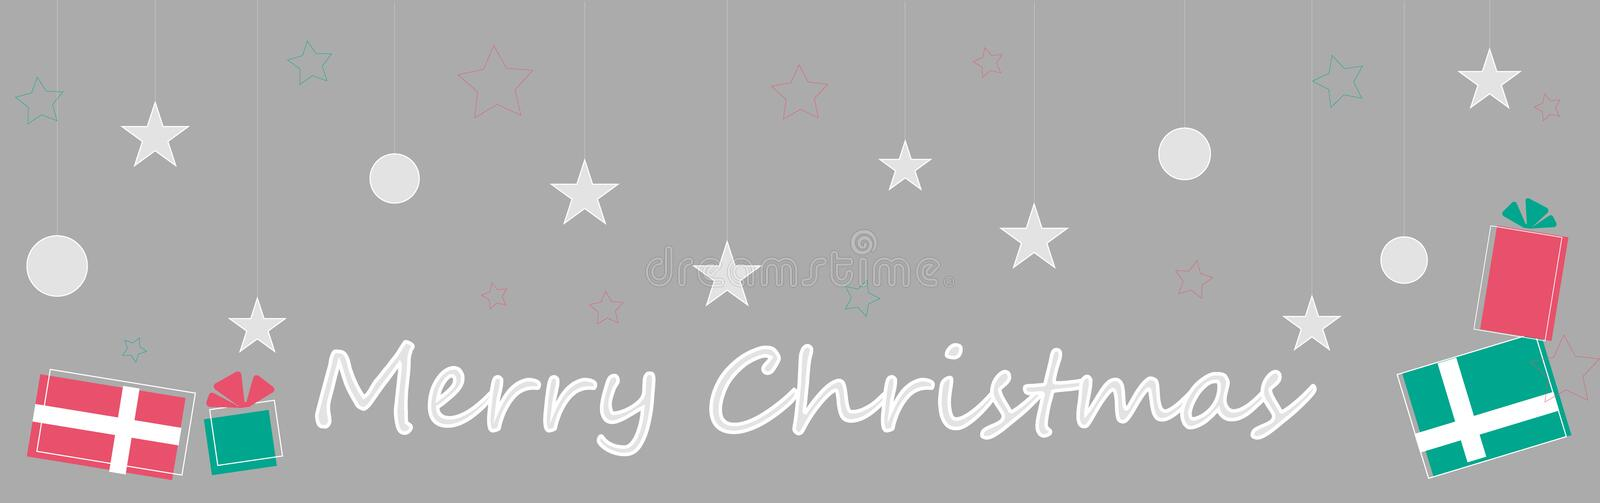 Merry Christmas. Gifts, snowballs, stars. royalty free illustration